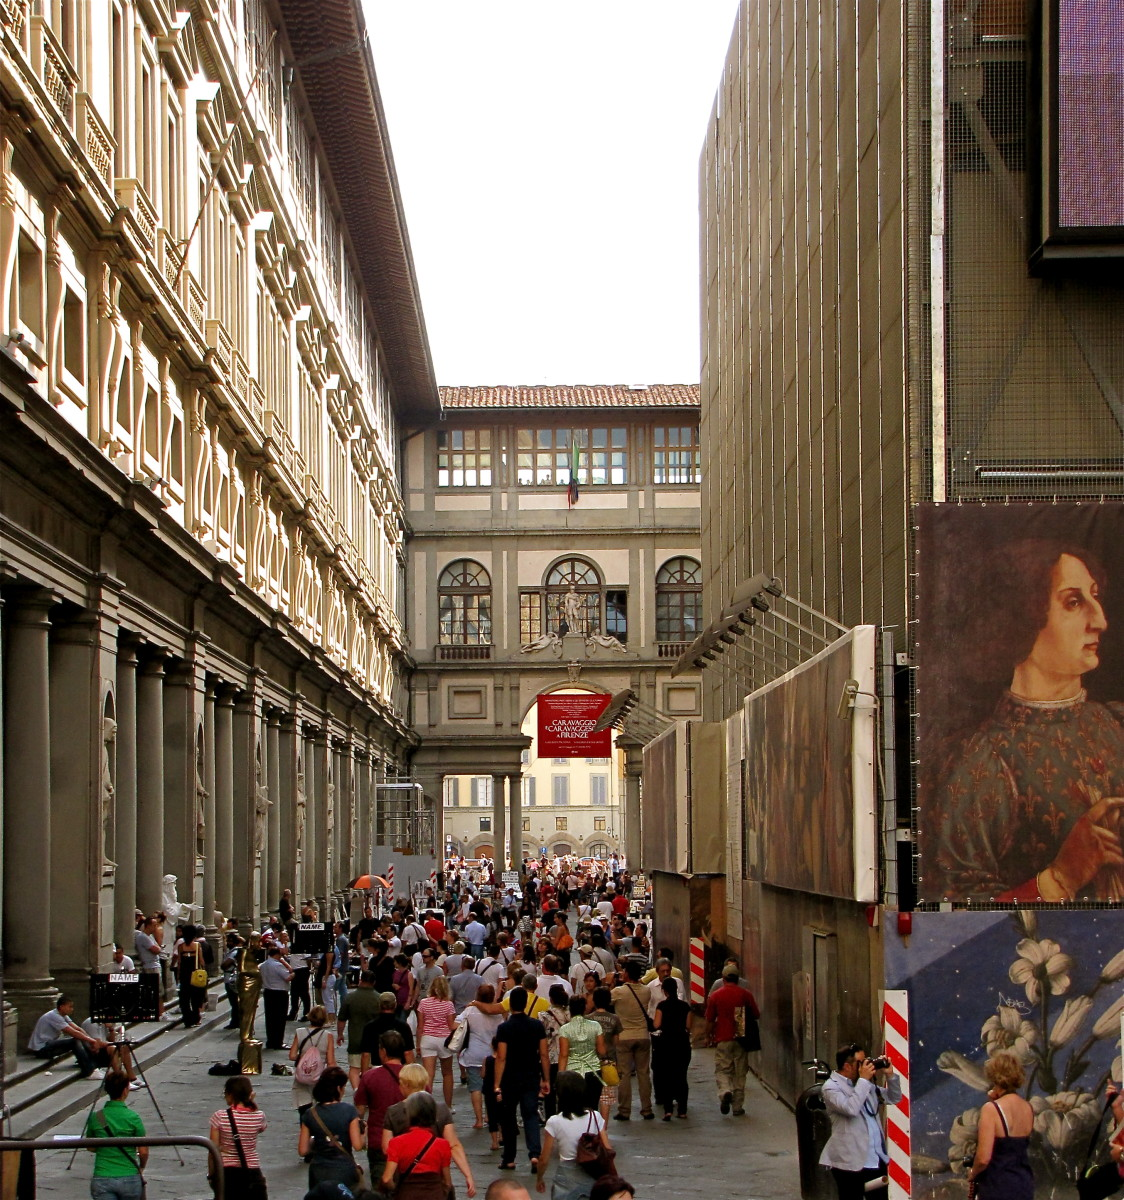 Galerie Des Offices Florence Réservation Tips For Visiting The Uffizi Museum Florence Italy Wanderwisdom